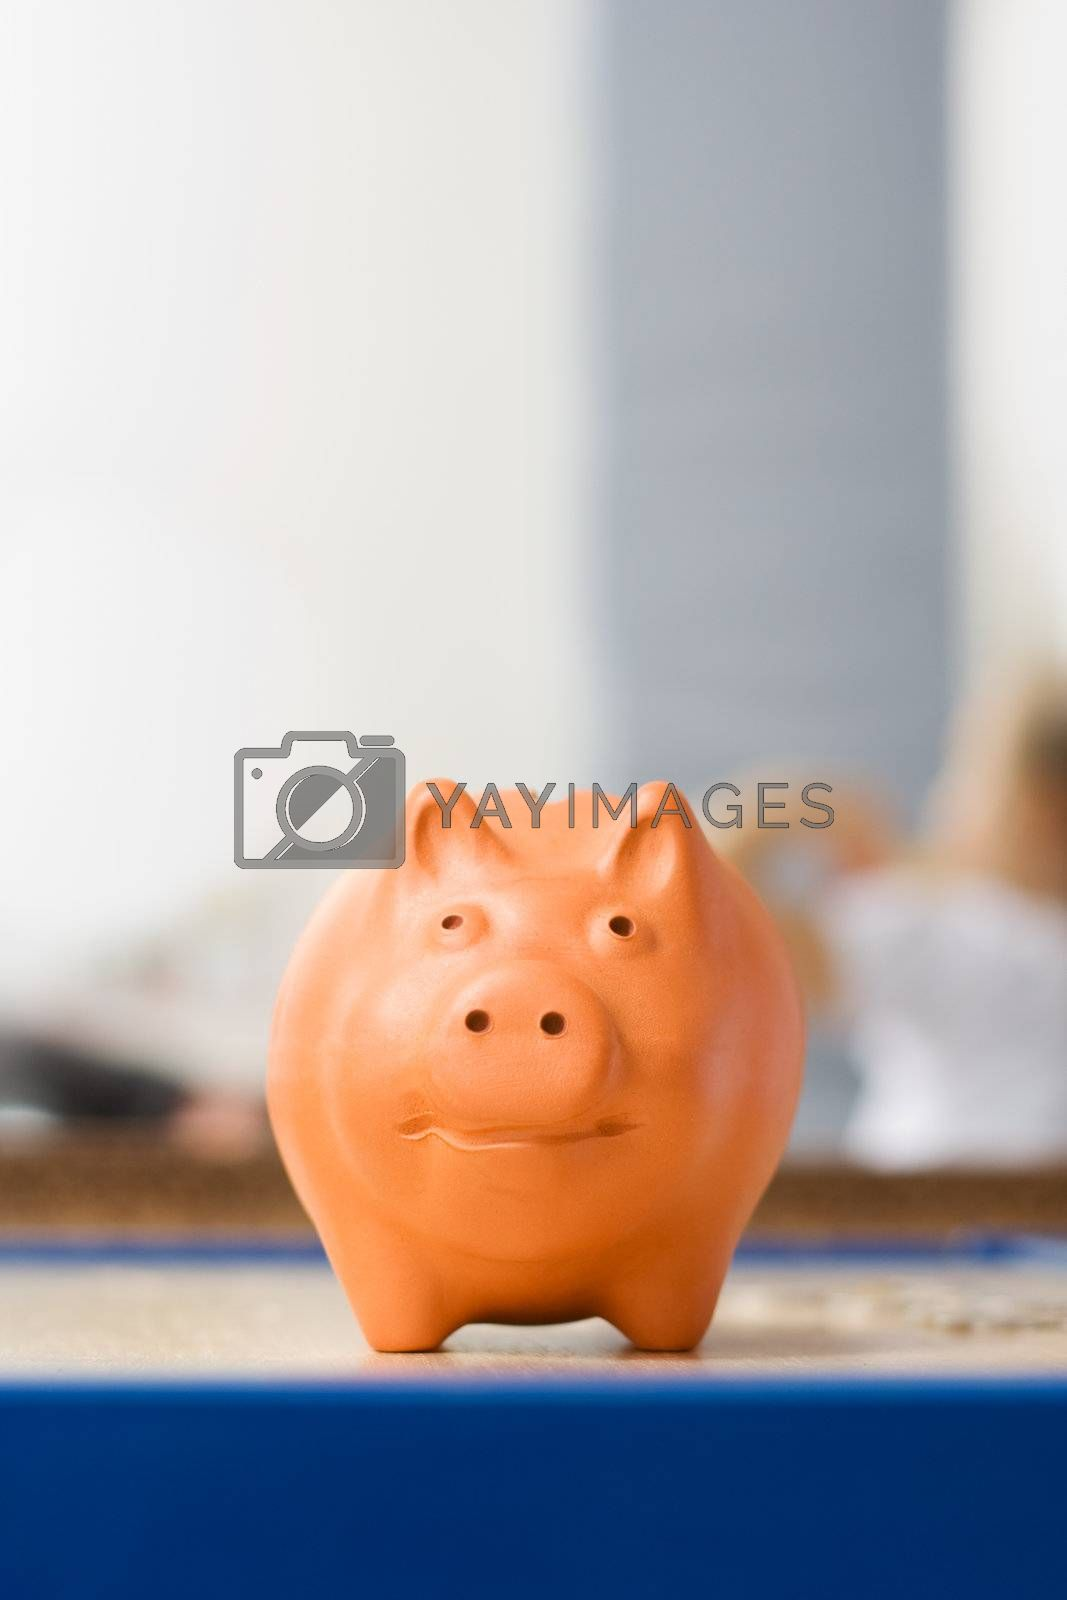 Fat clay piggy bank on the table